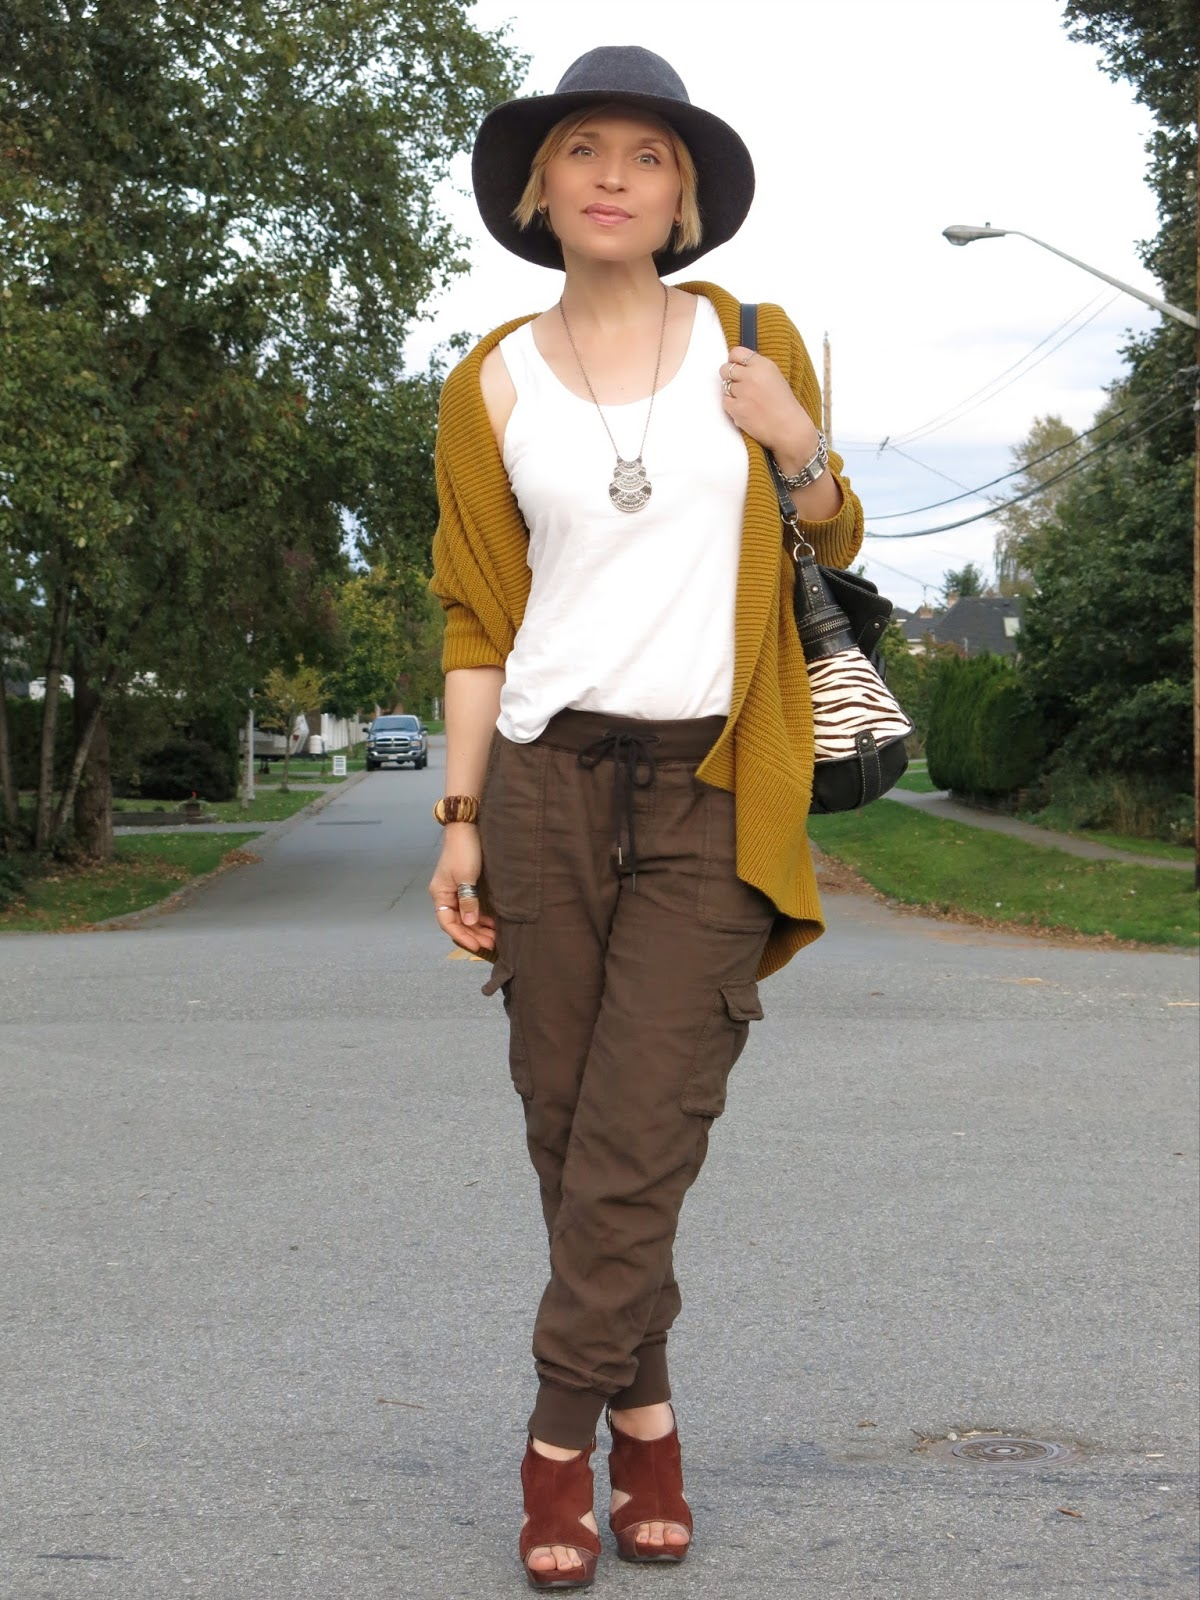 styling slouchy cargos with a drapey mustard-yellow cardigan, Nine West heels, and a floppy hat